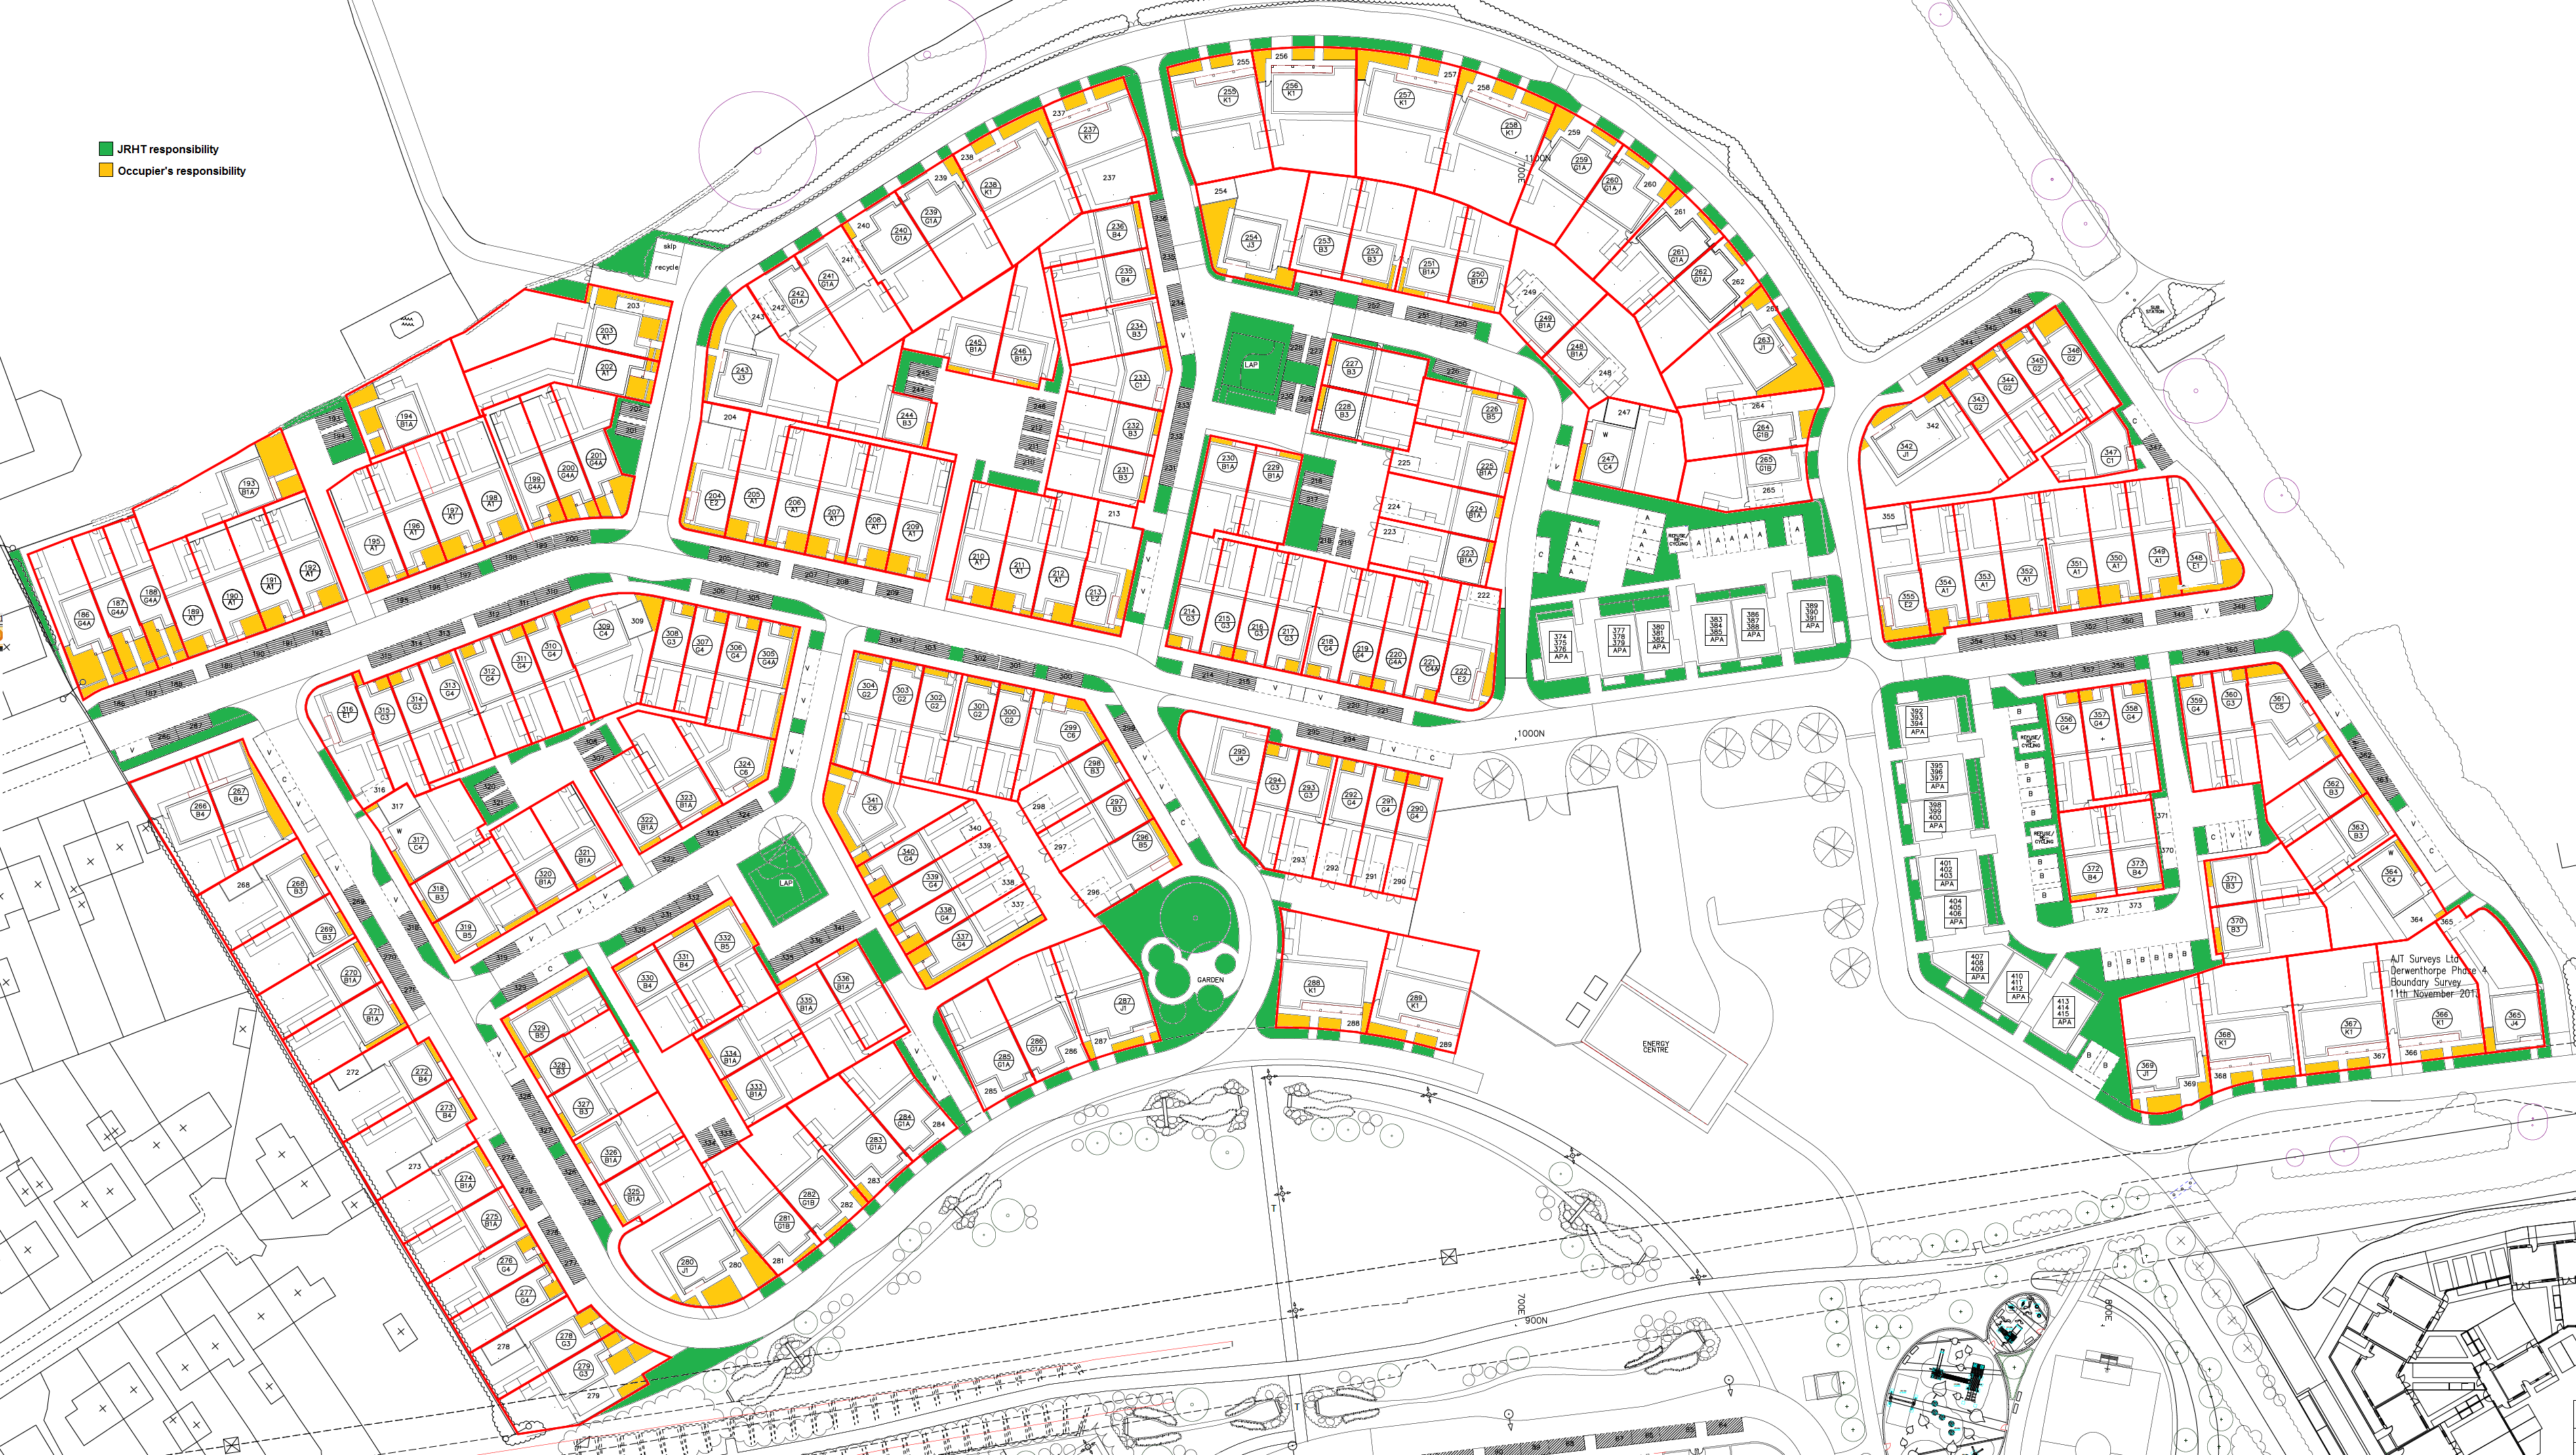 Map of all Seebohm Quarter, showing car parking spaces.